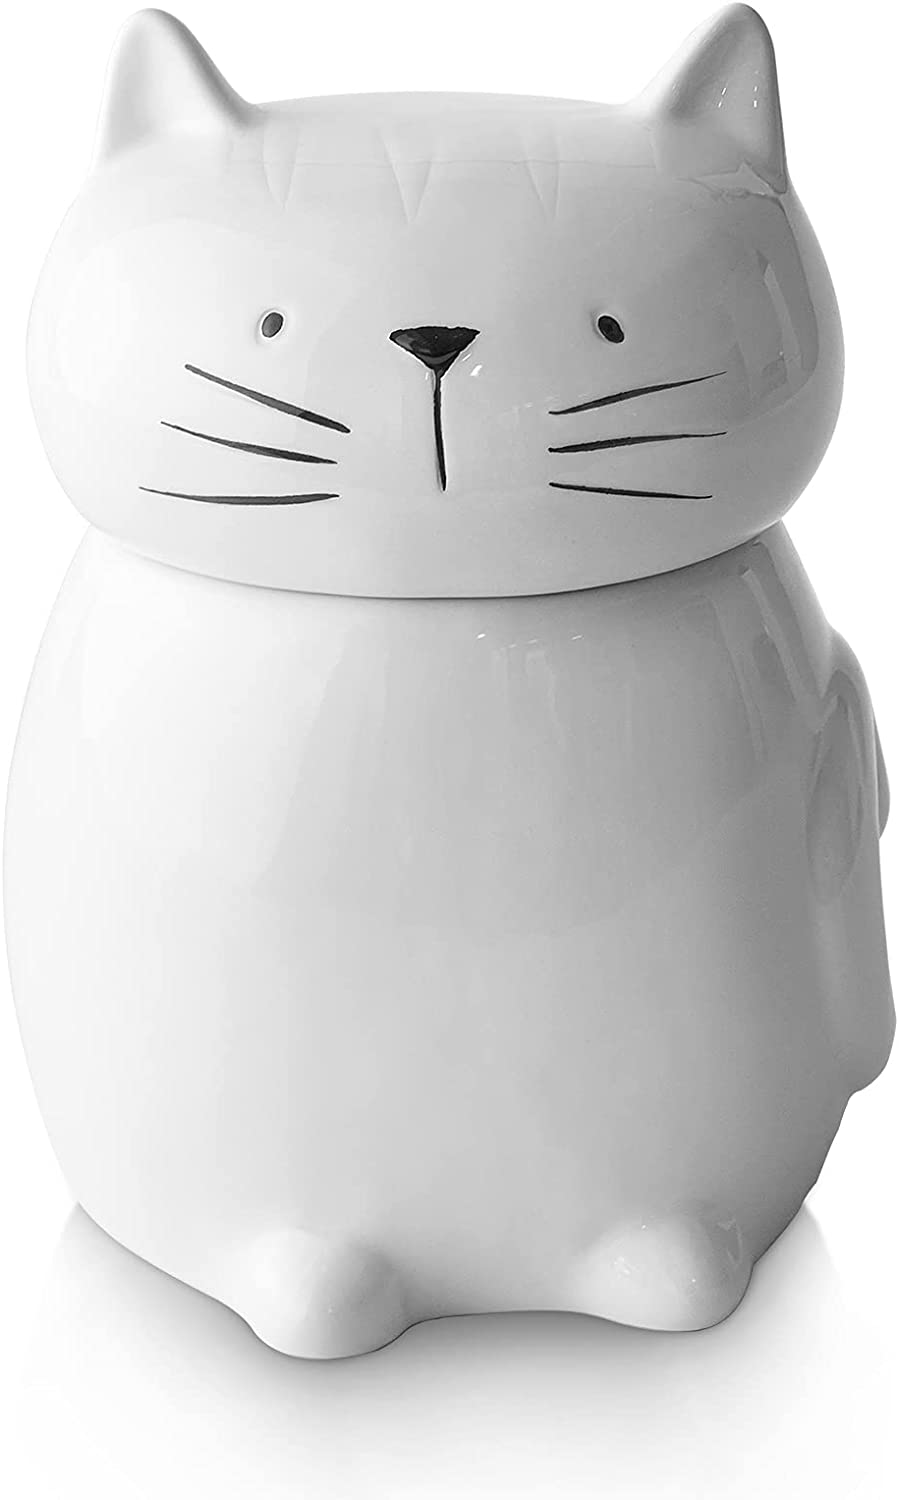 Y YHY Dog and Cat Food Storage Container,Airtight Ceramic Pet Food Storage for Dog and Cat, Dog Food Storage and Cat Food Storage,Dog Cat Food Bin,Cute Cat Design with Mini Wings and Tail